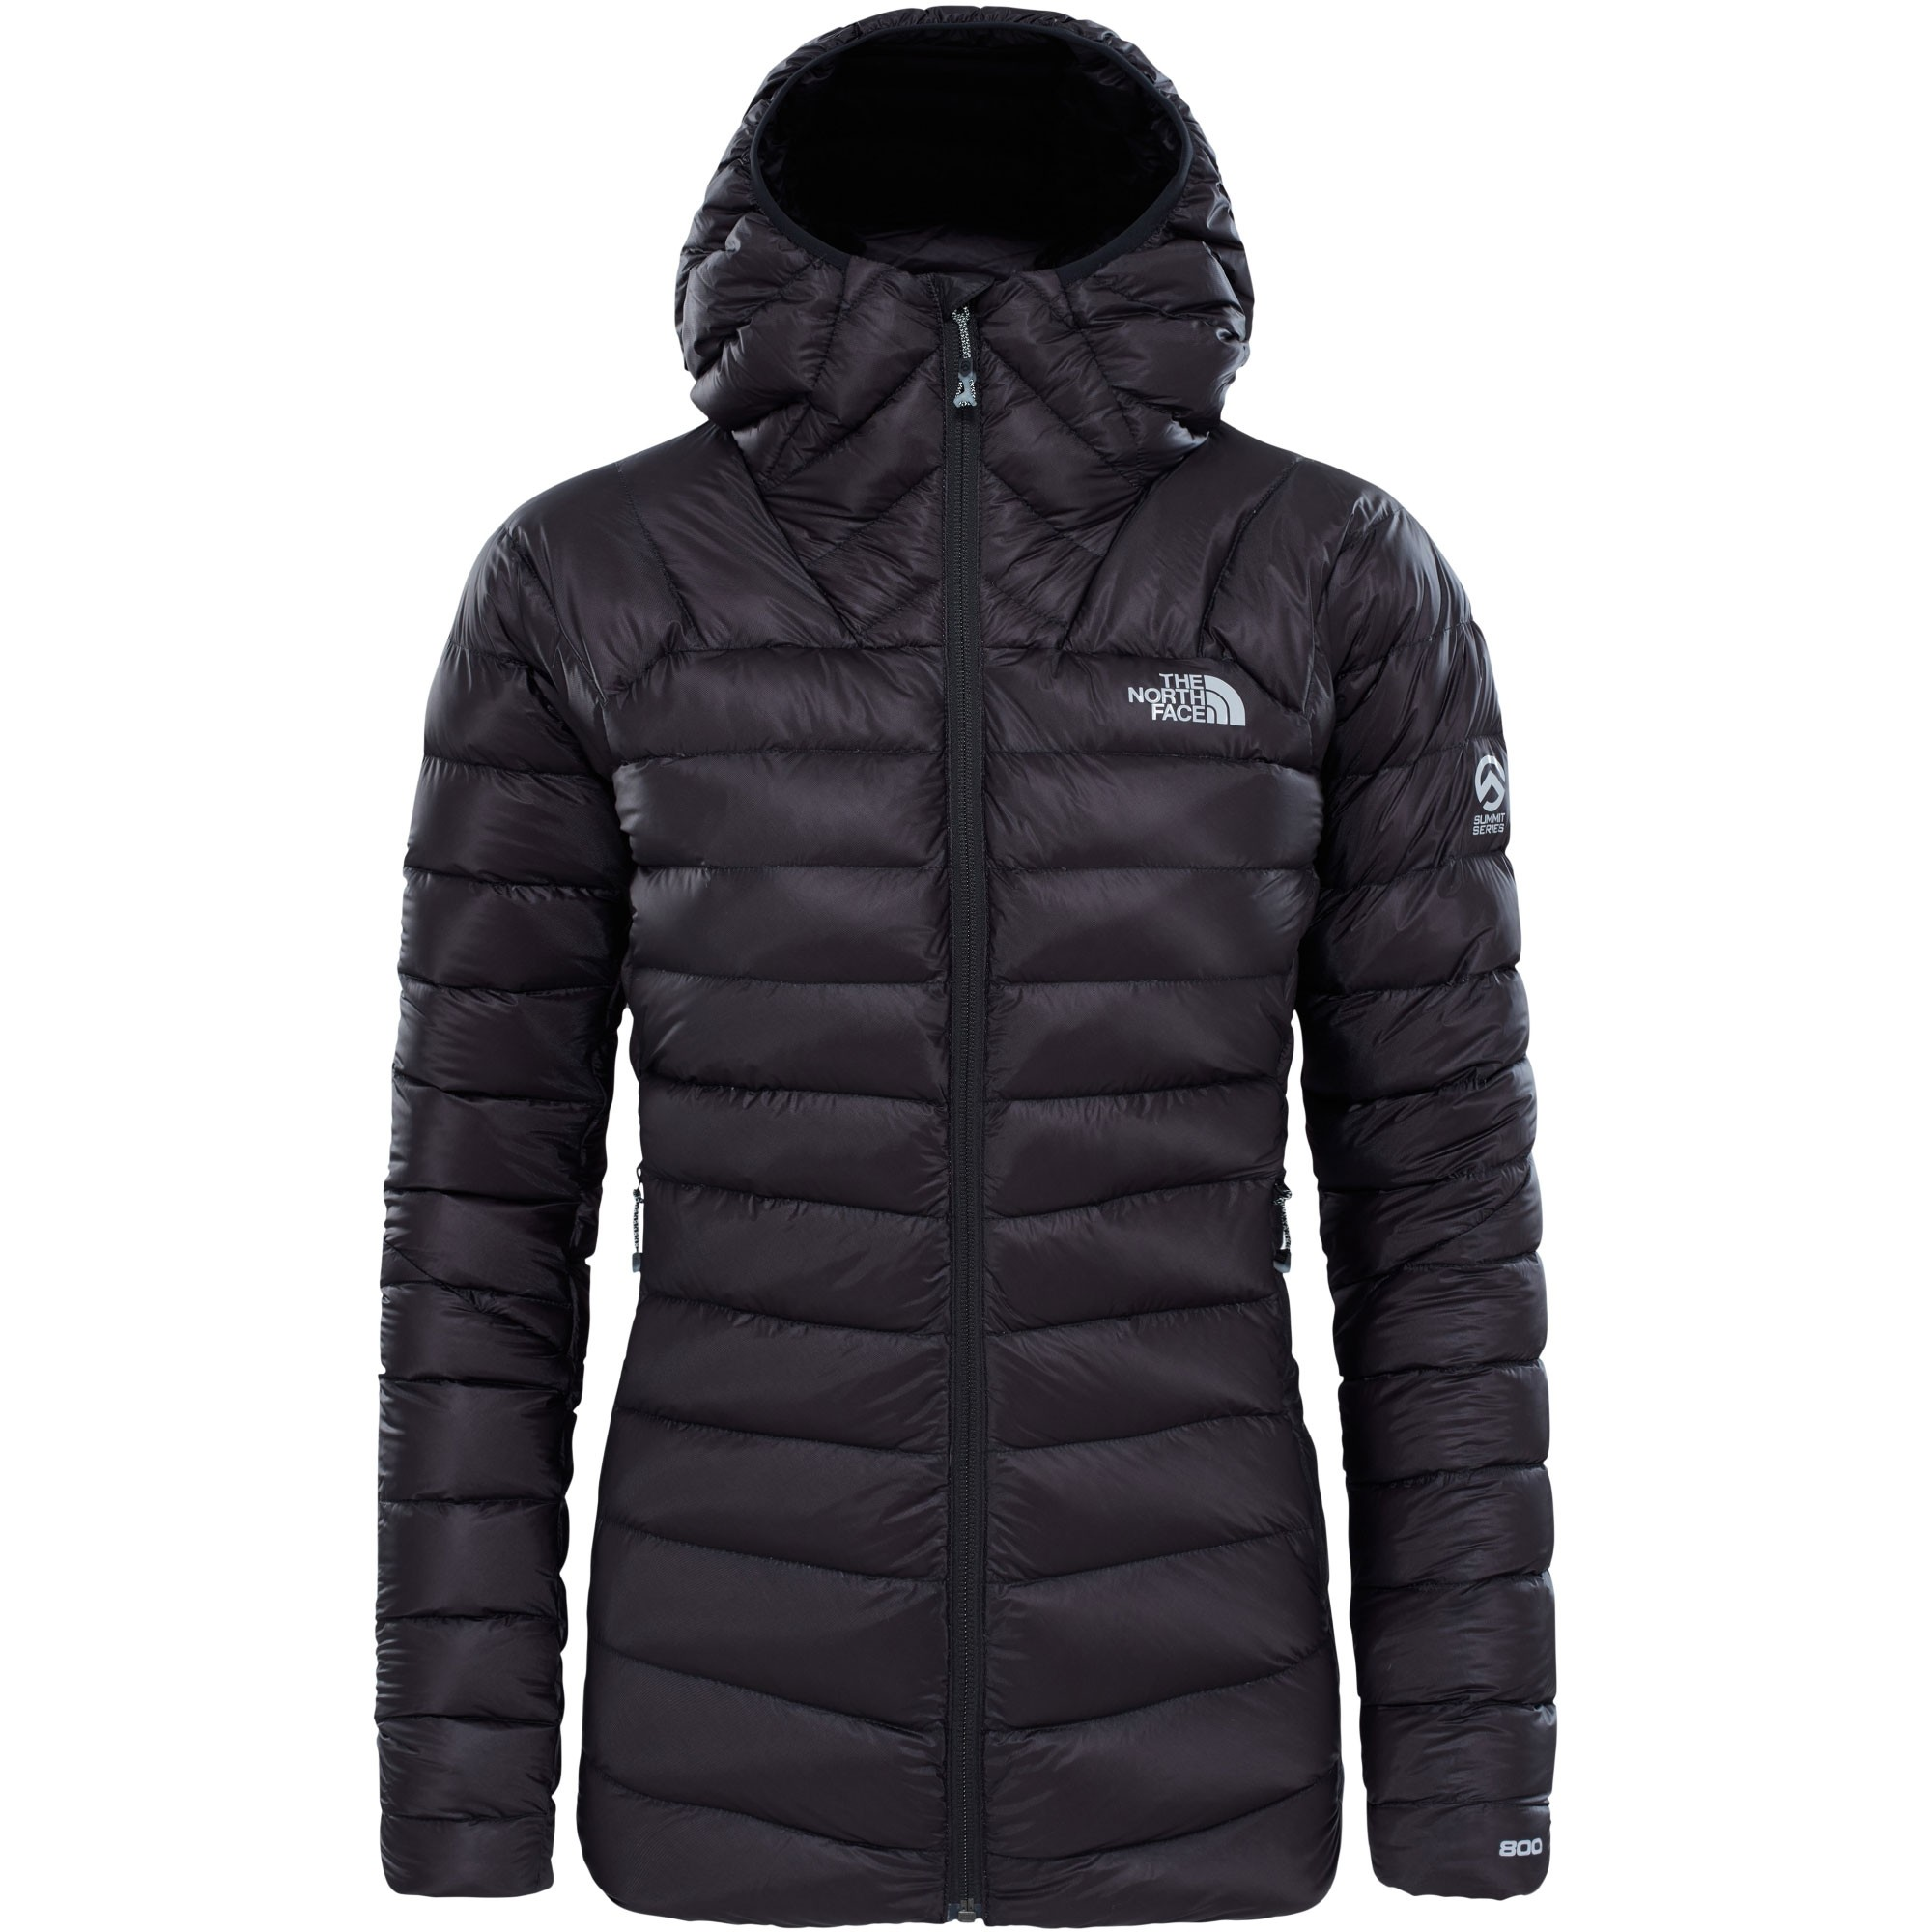 23a66d3a1 The North Face Summit L3 Women's Down Hoodie available at Outside.co.uk